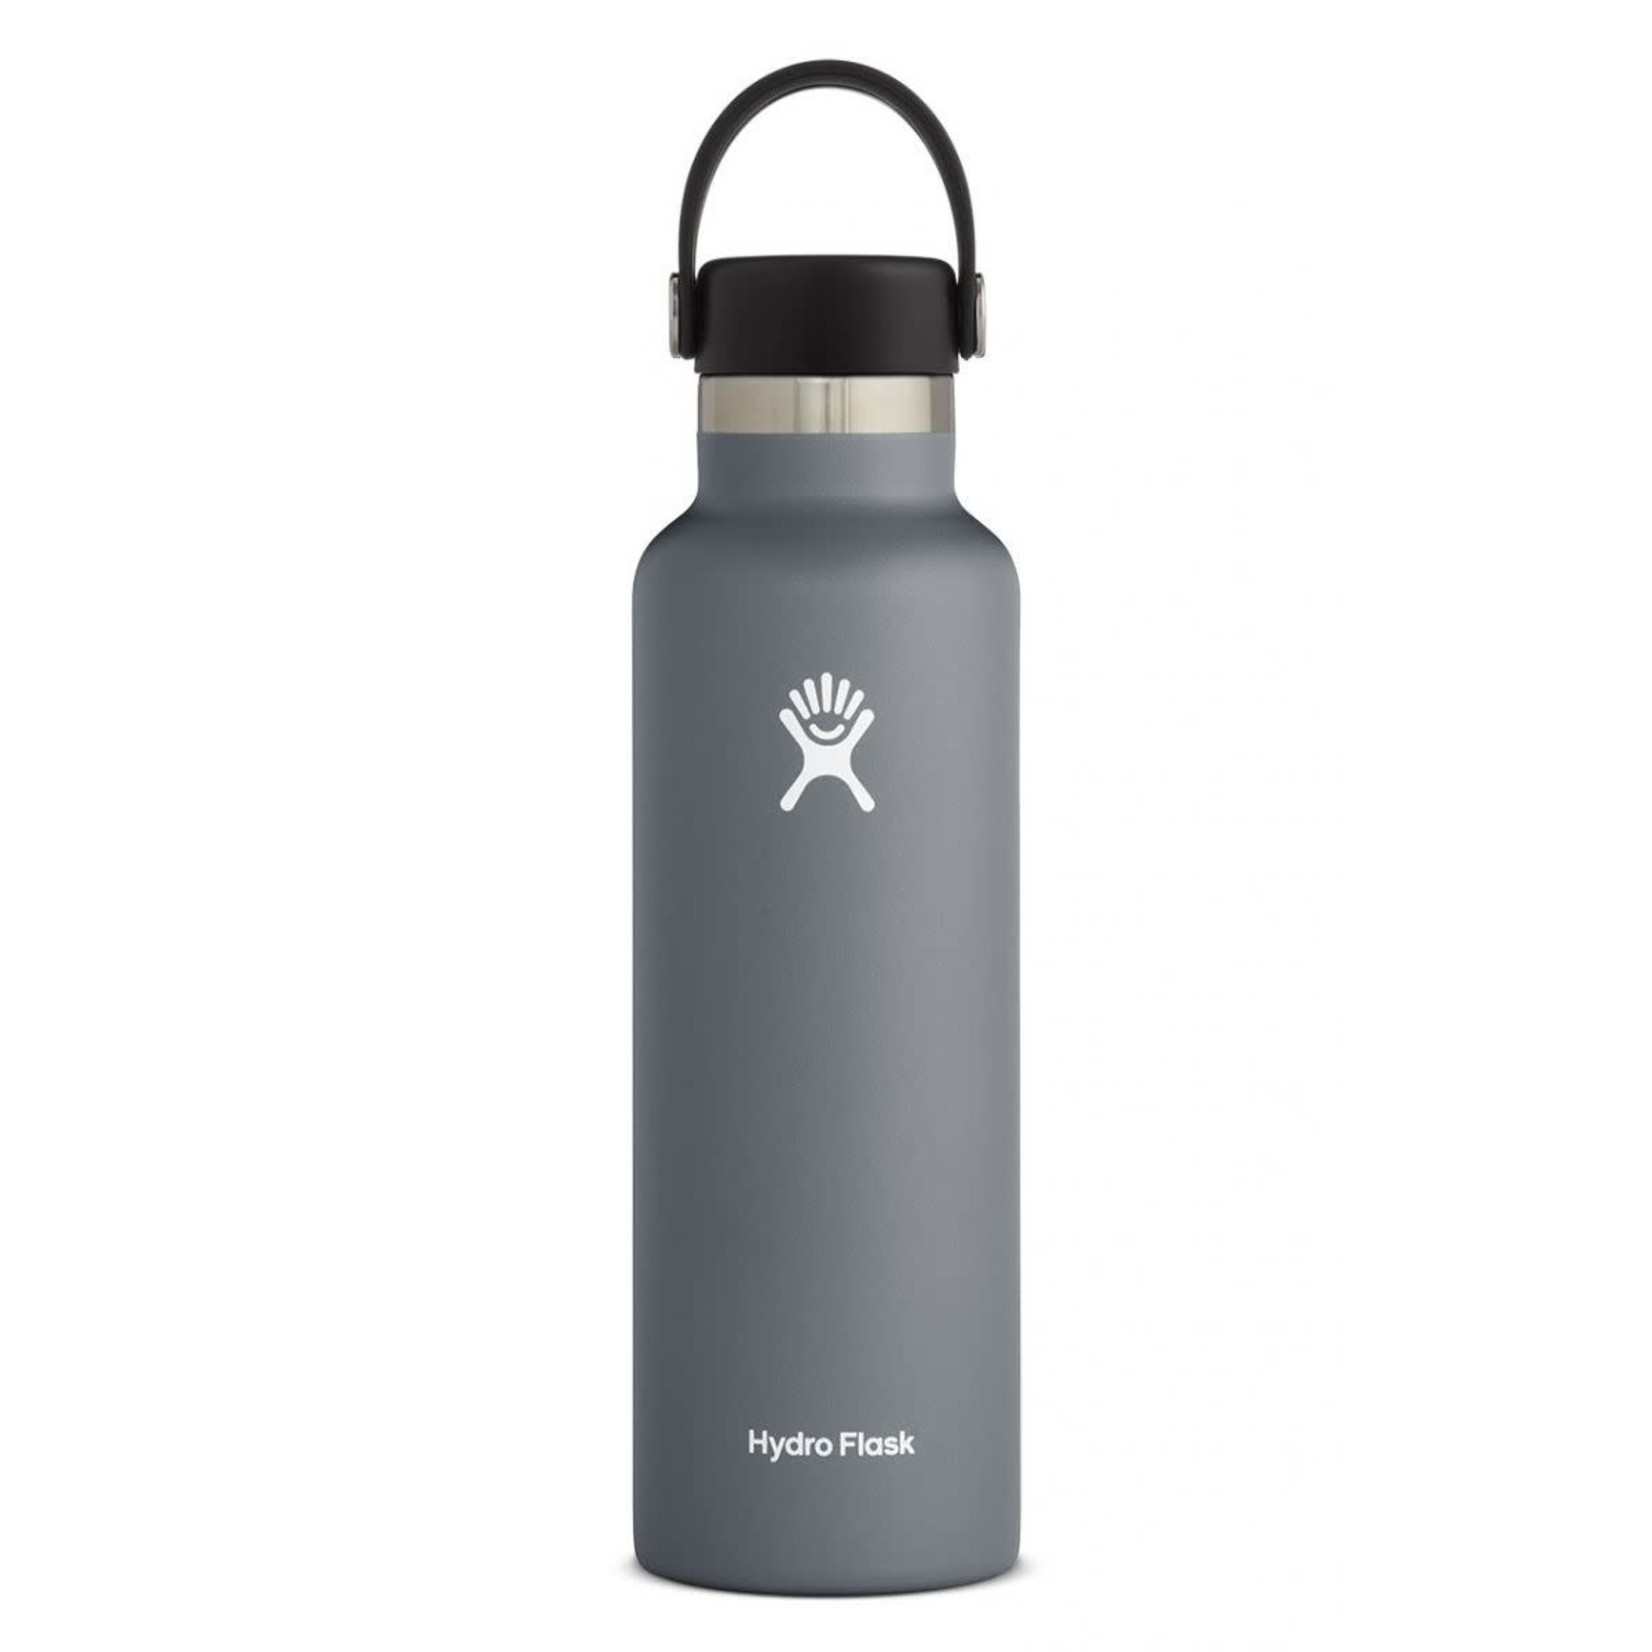 Hydro Flask Hydro Flask 21oz Standard Mouth.